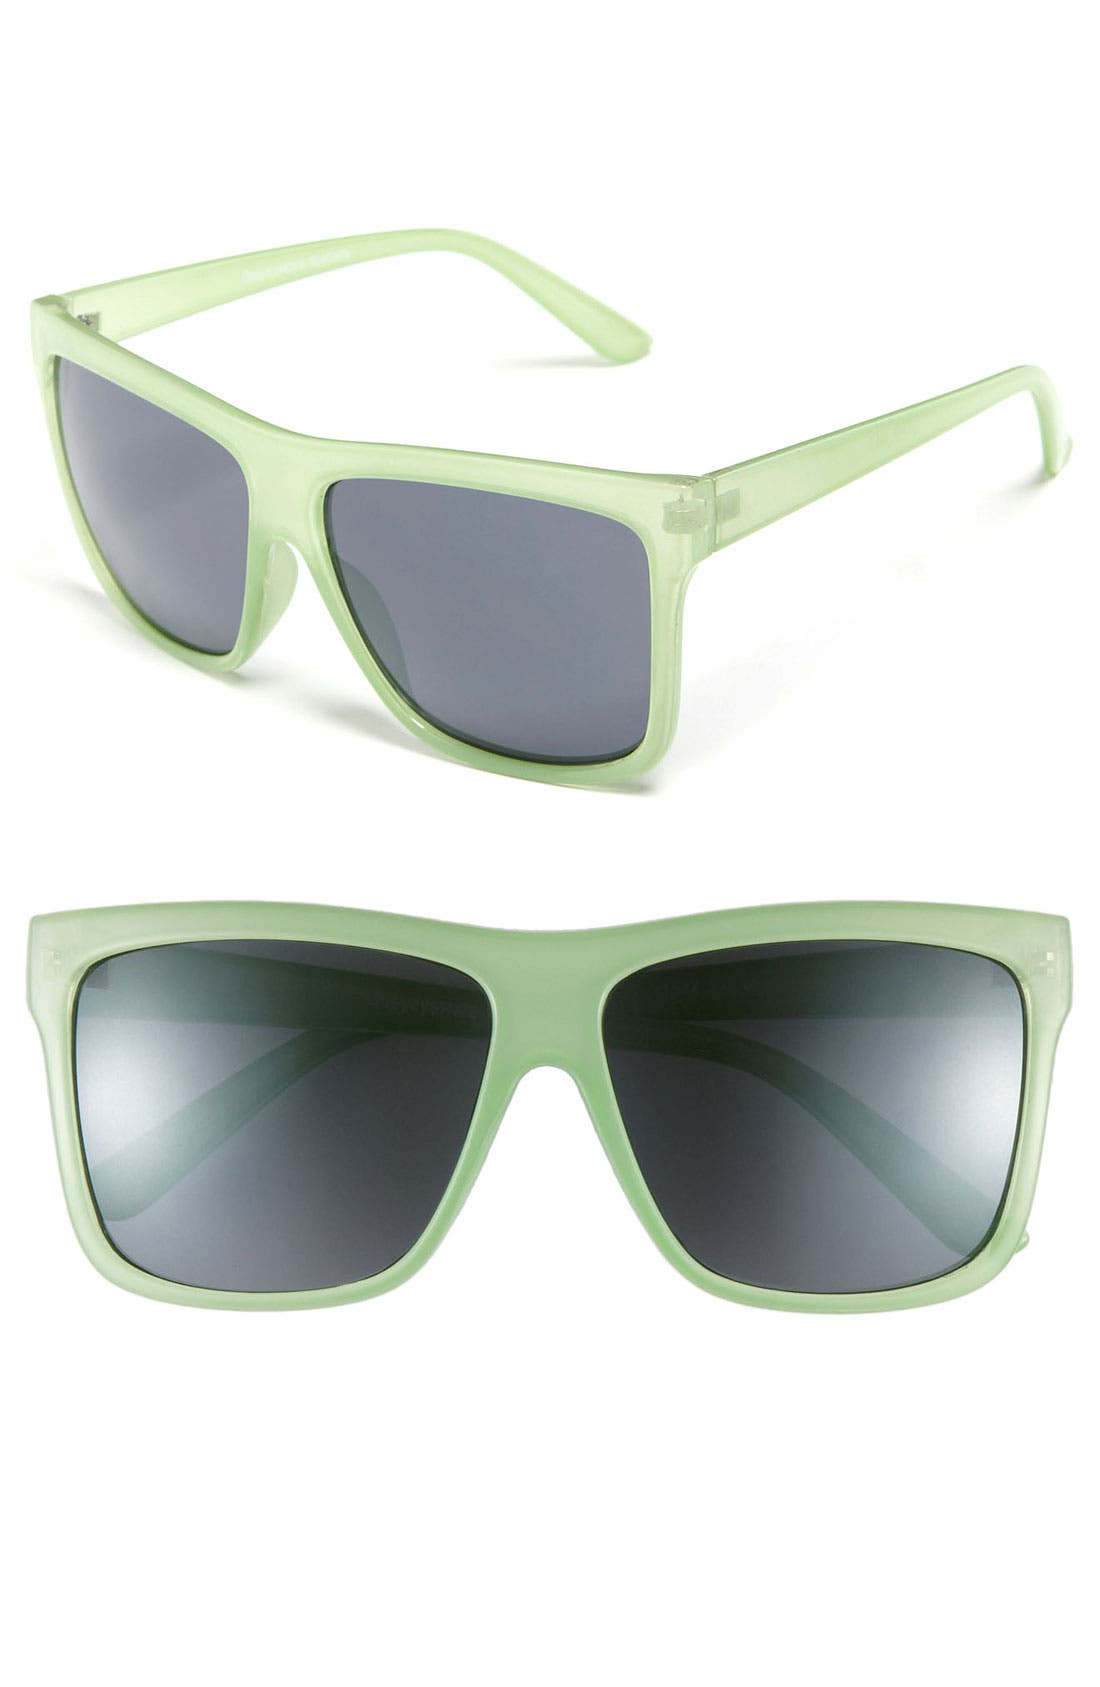 Quay Sunglasses,                             Main thumbnail 1, color,                             300